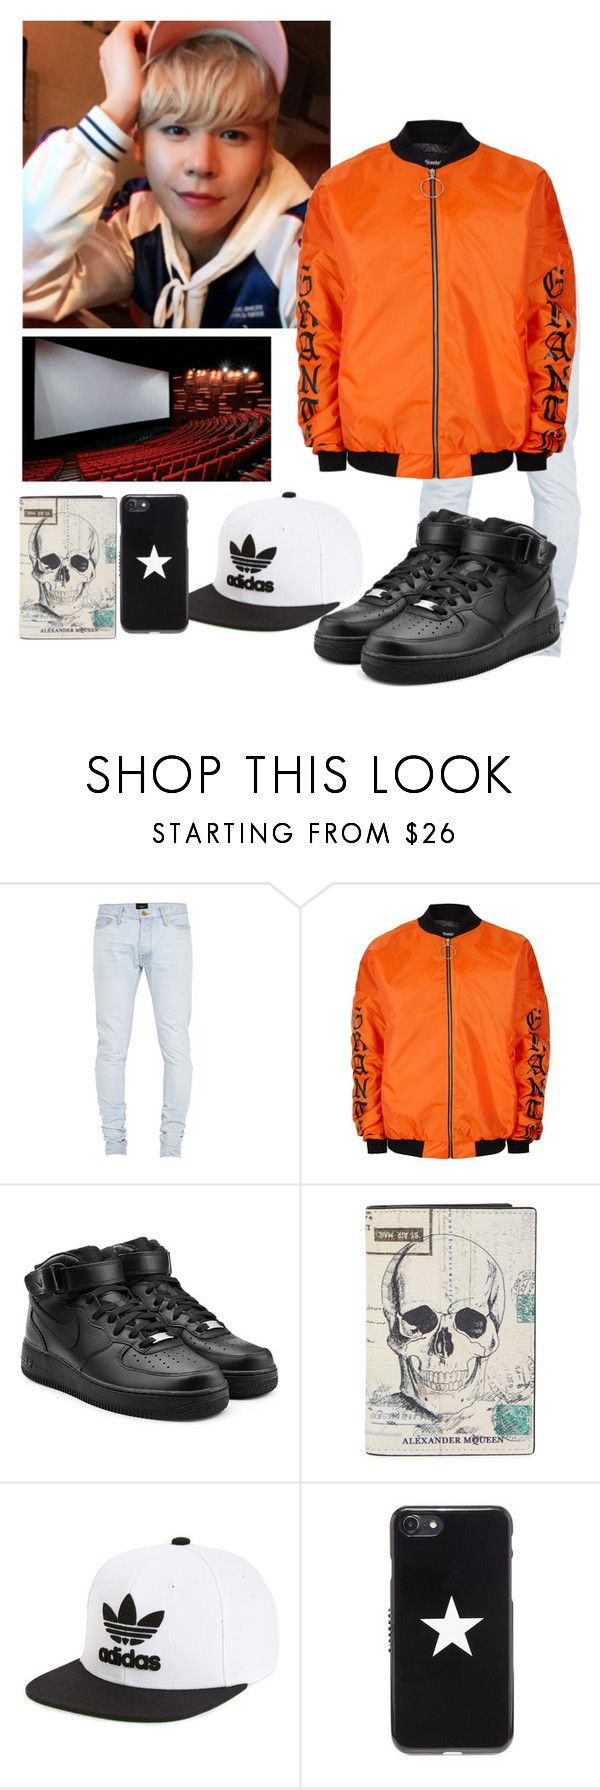 """""""Bobi- Movie Date"""" by ra5calicate ❤ liked on Polyvore featuring Fear of God, Topman, NIKE, Alexander McQueen, adidas, Givenchy, men's fashion and menswear"""